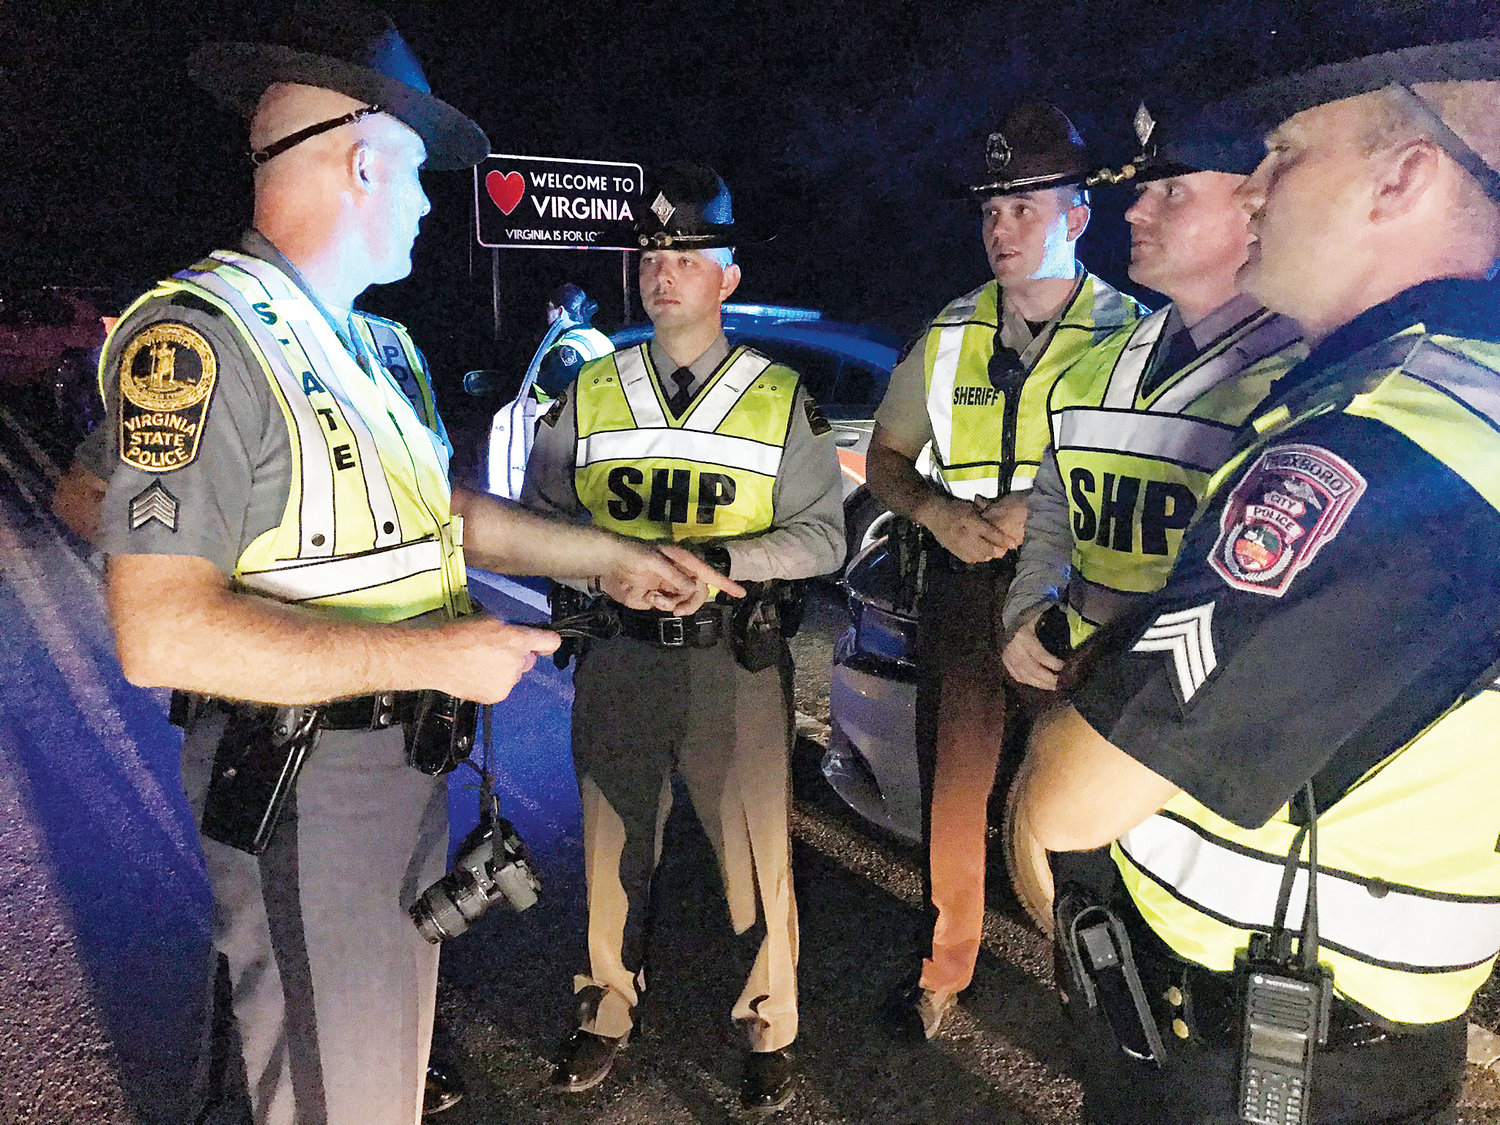 Law enforcement officers from Virginia and North Carolina teamed up to put on a traffic safety checkpoint Friday night.